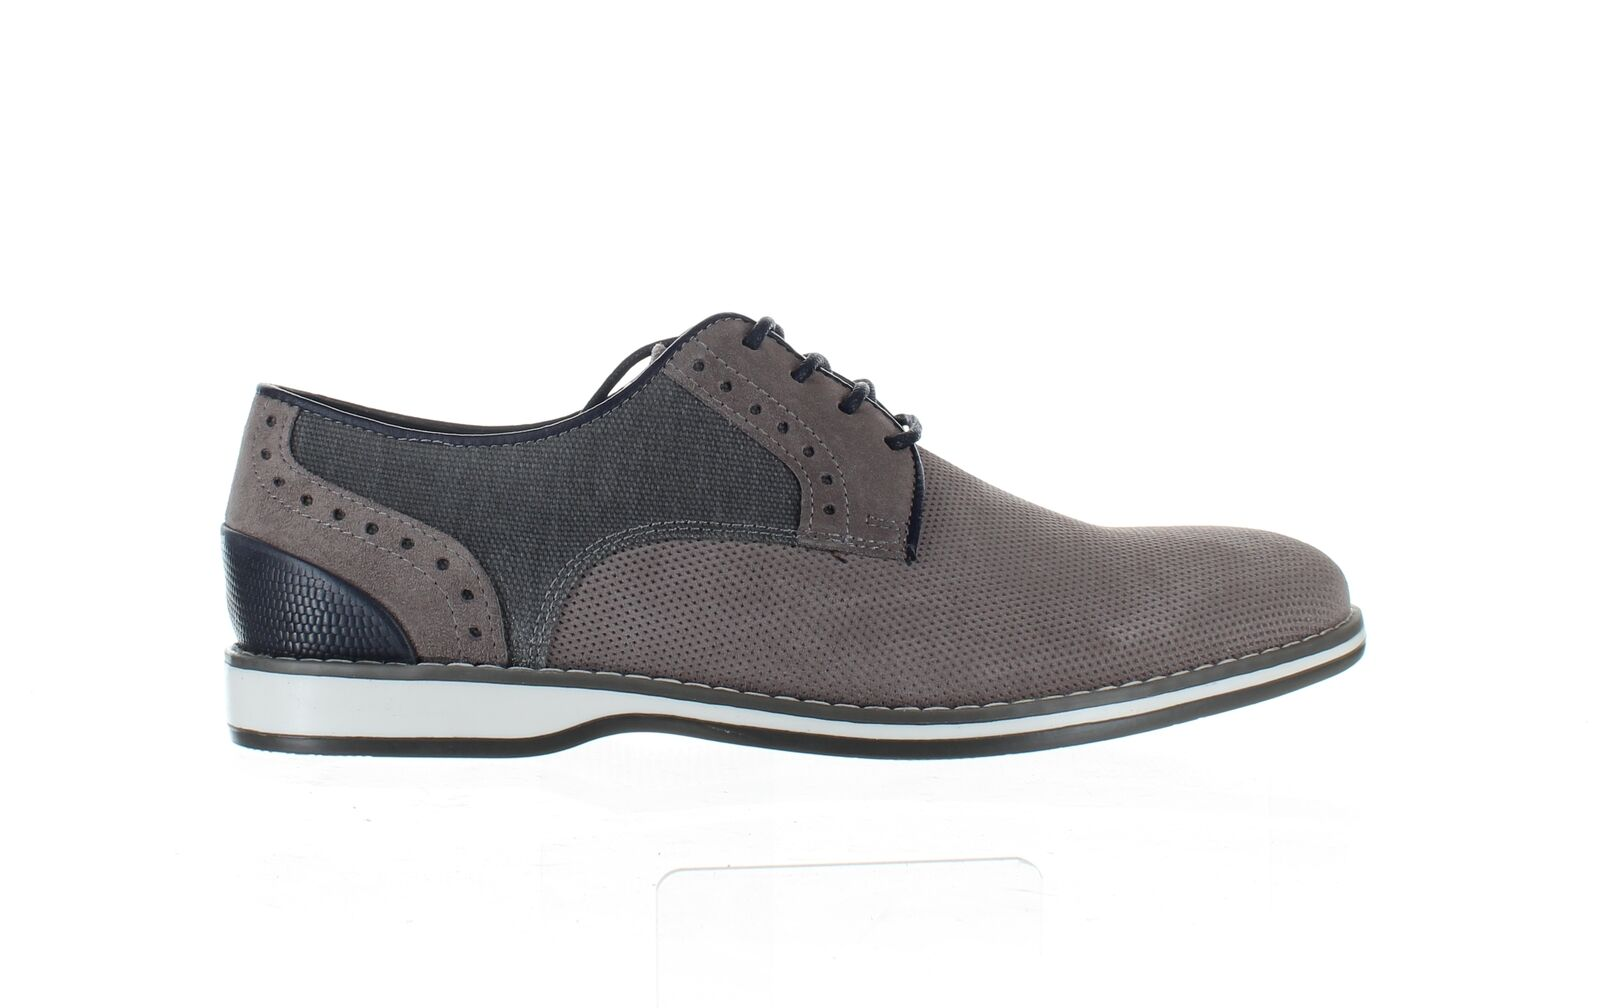 Kenneth Cole Mens Weiser Lace Grey Oxford Dress Shoe Size 7.5 (1794890)